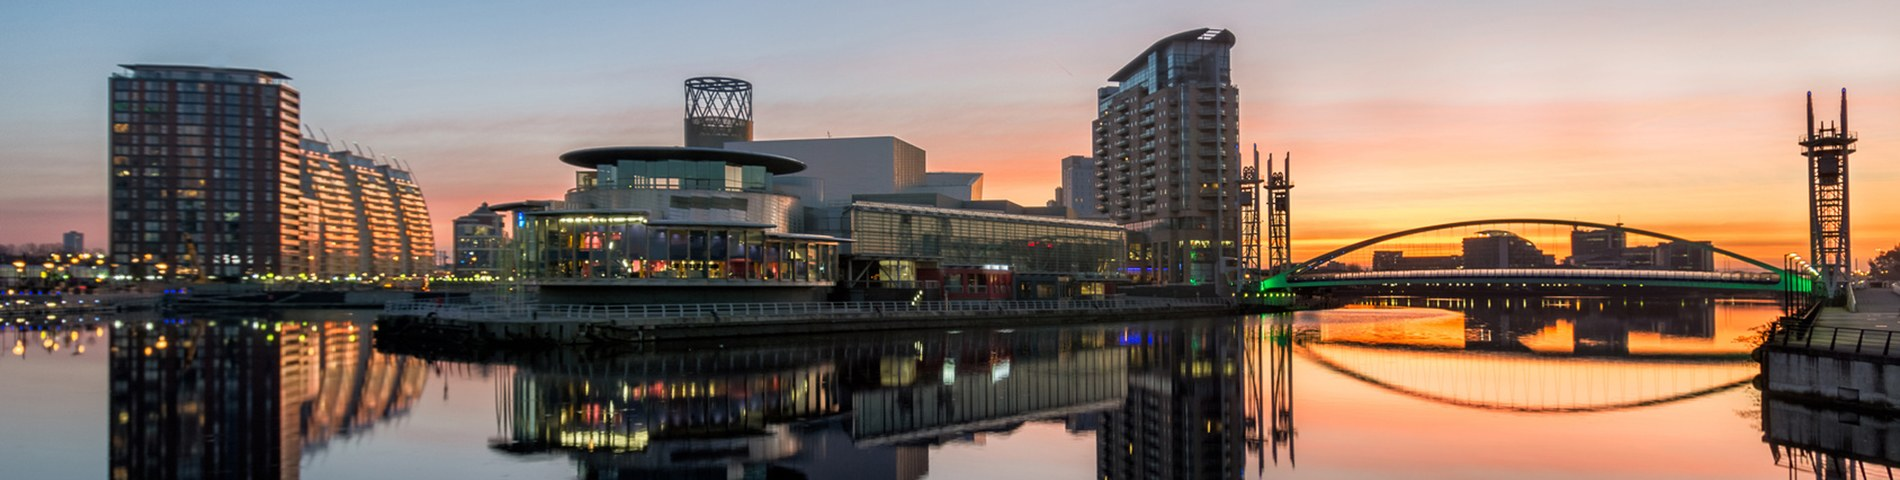 Study & Live in your Teacher's Home Bild 1